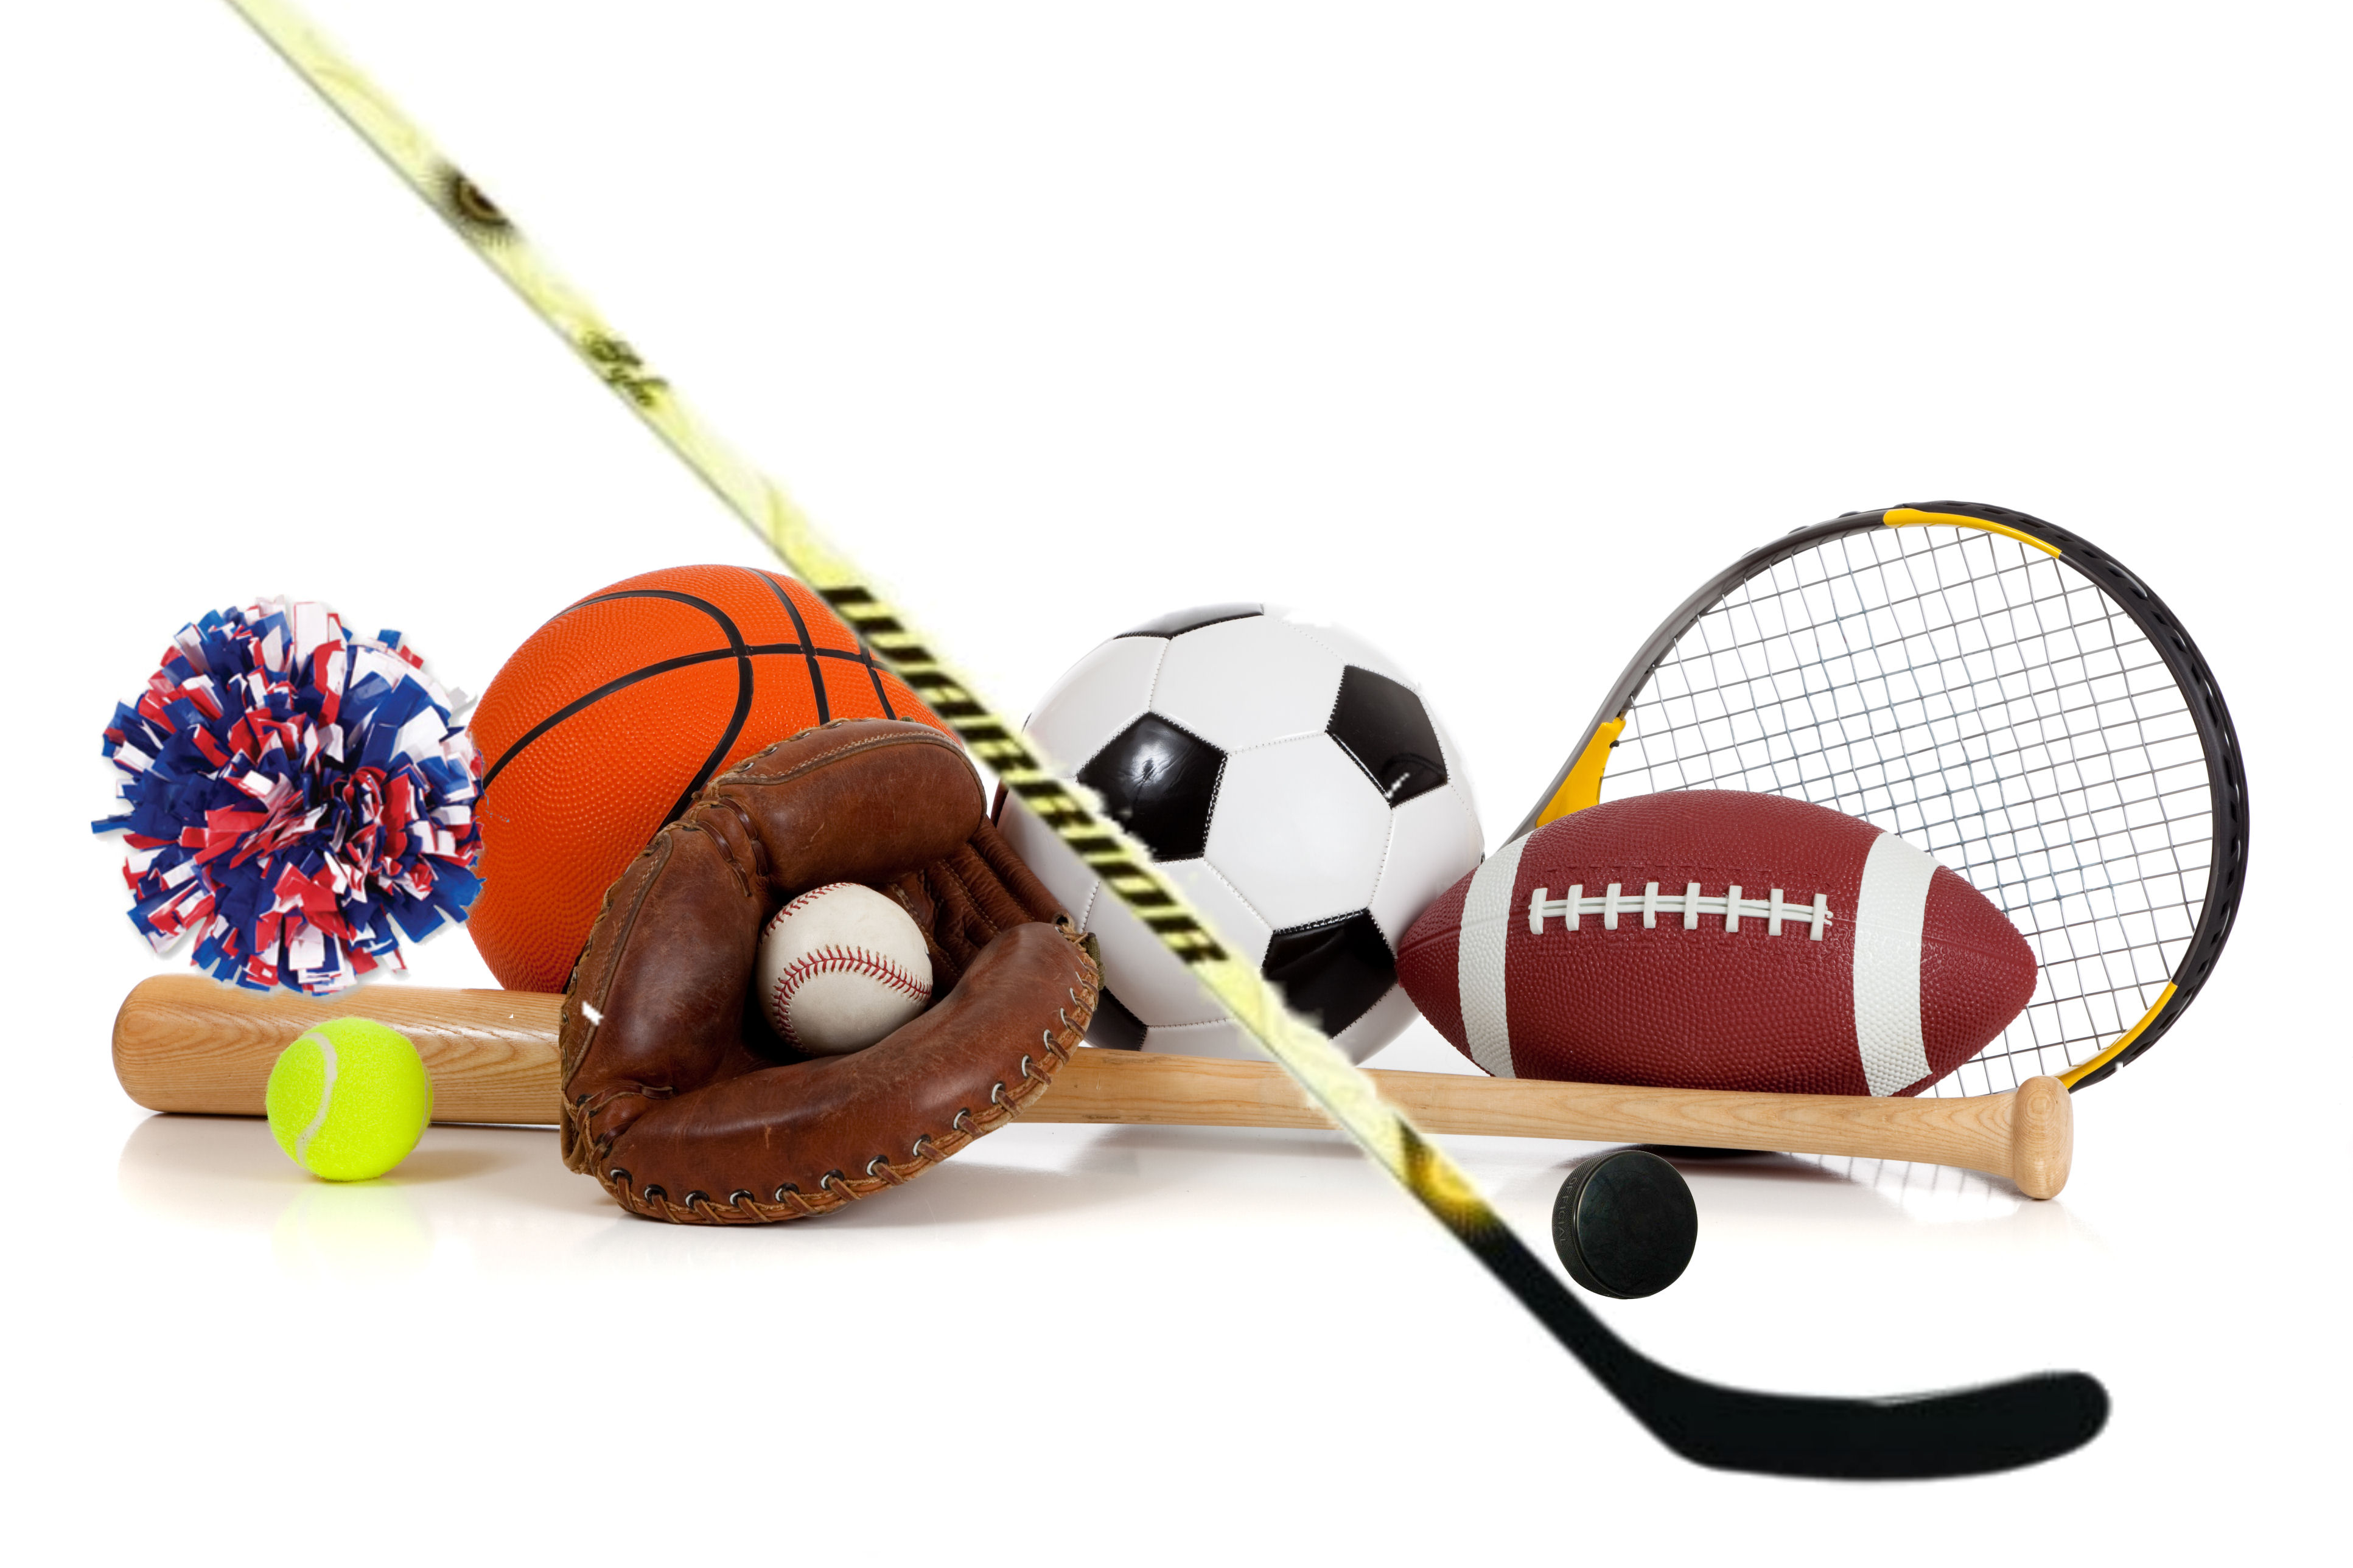 Sport Wallpaper Clipart: Sports Equipment Wallpapers High Quality